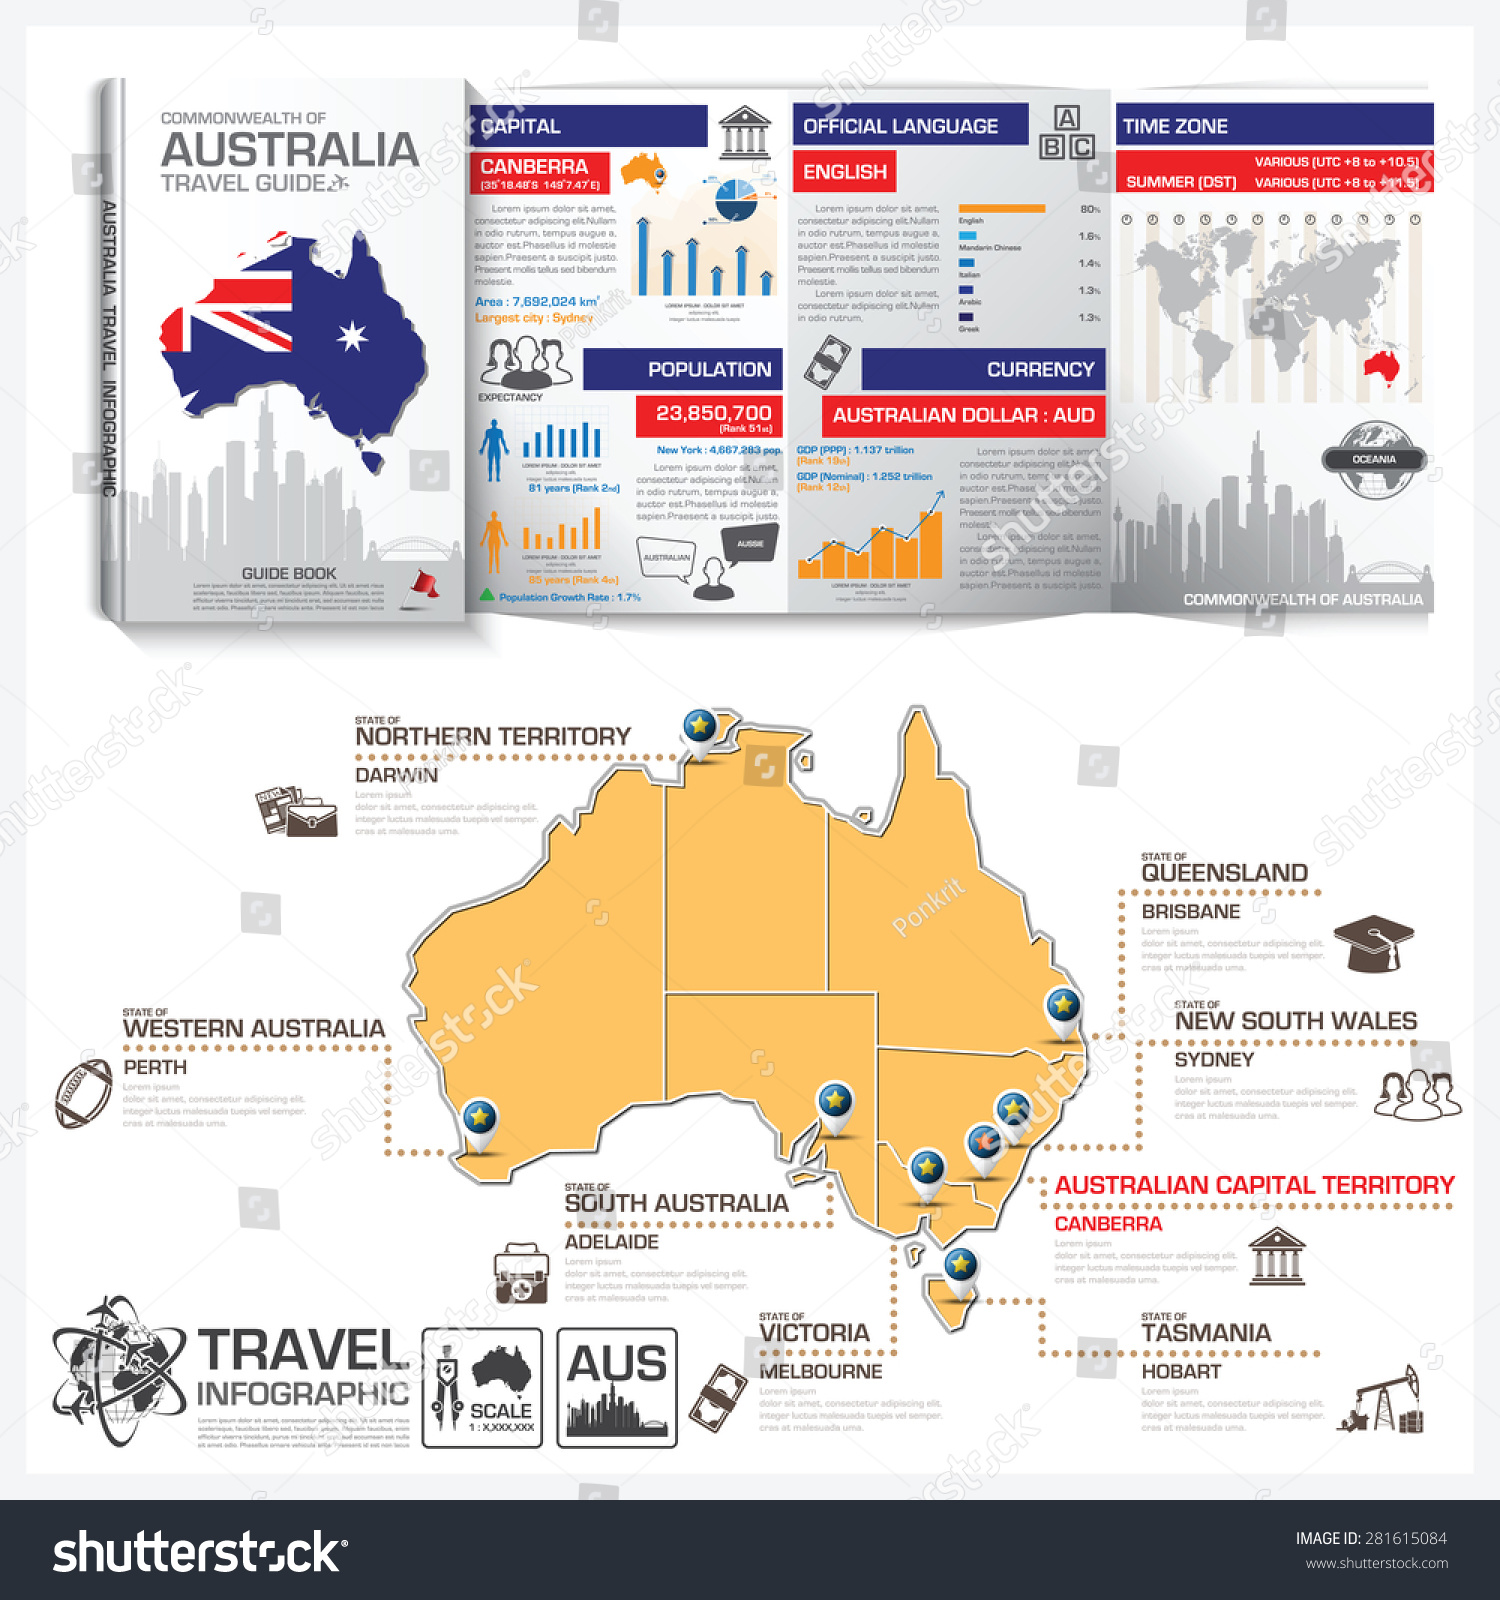 Commonwealth australia travel guide book business vectores en stock commonwealth of australia travel guide book business infographic with map vector design template gumiabroncs Images